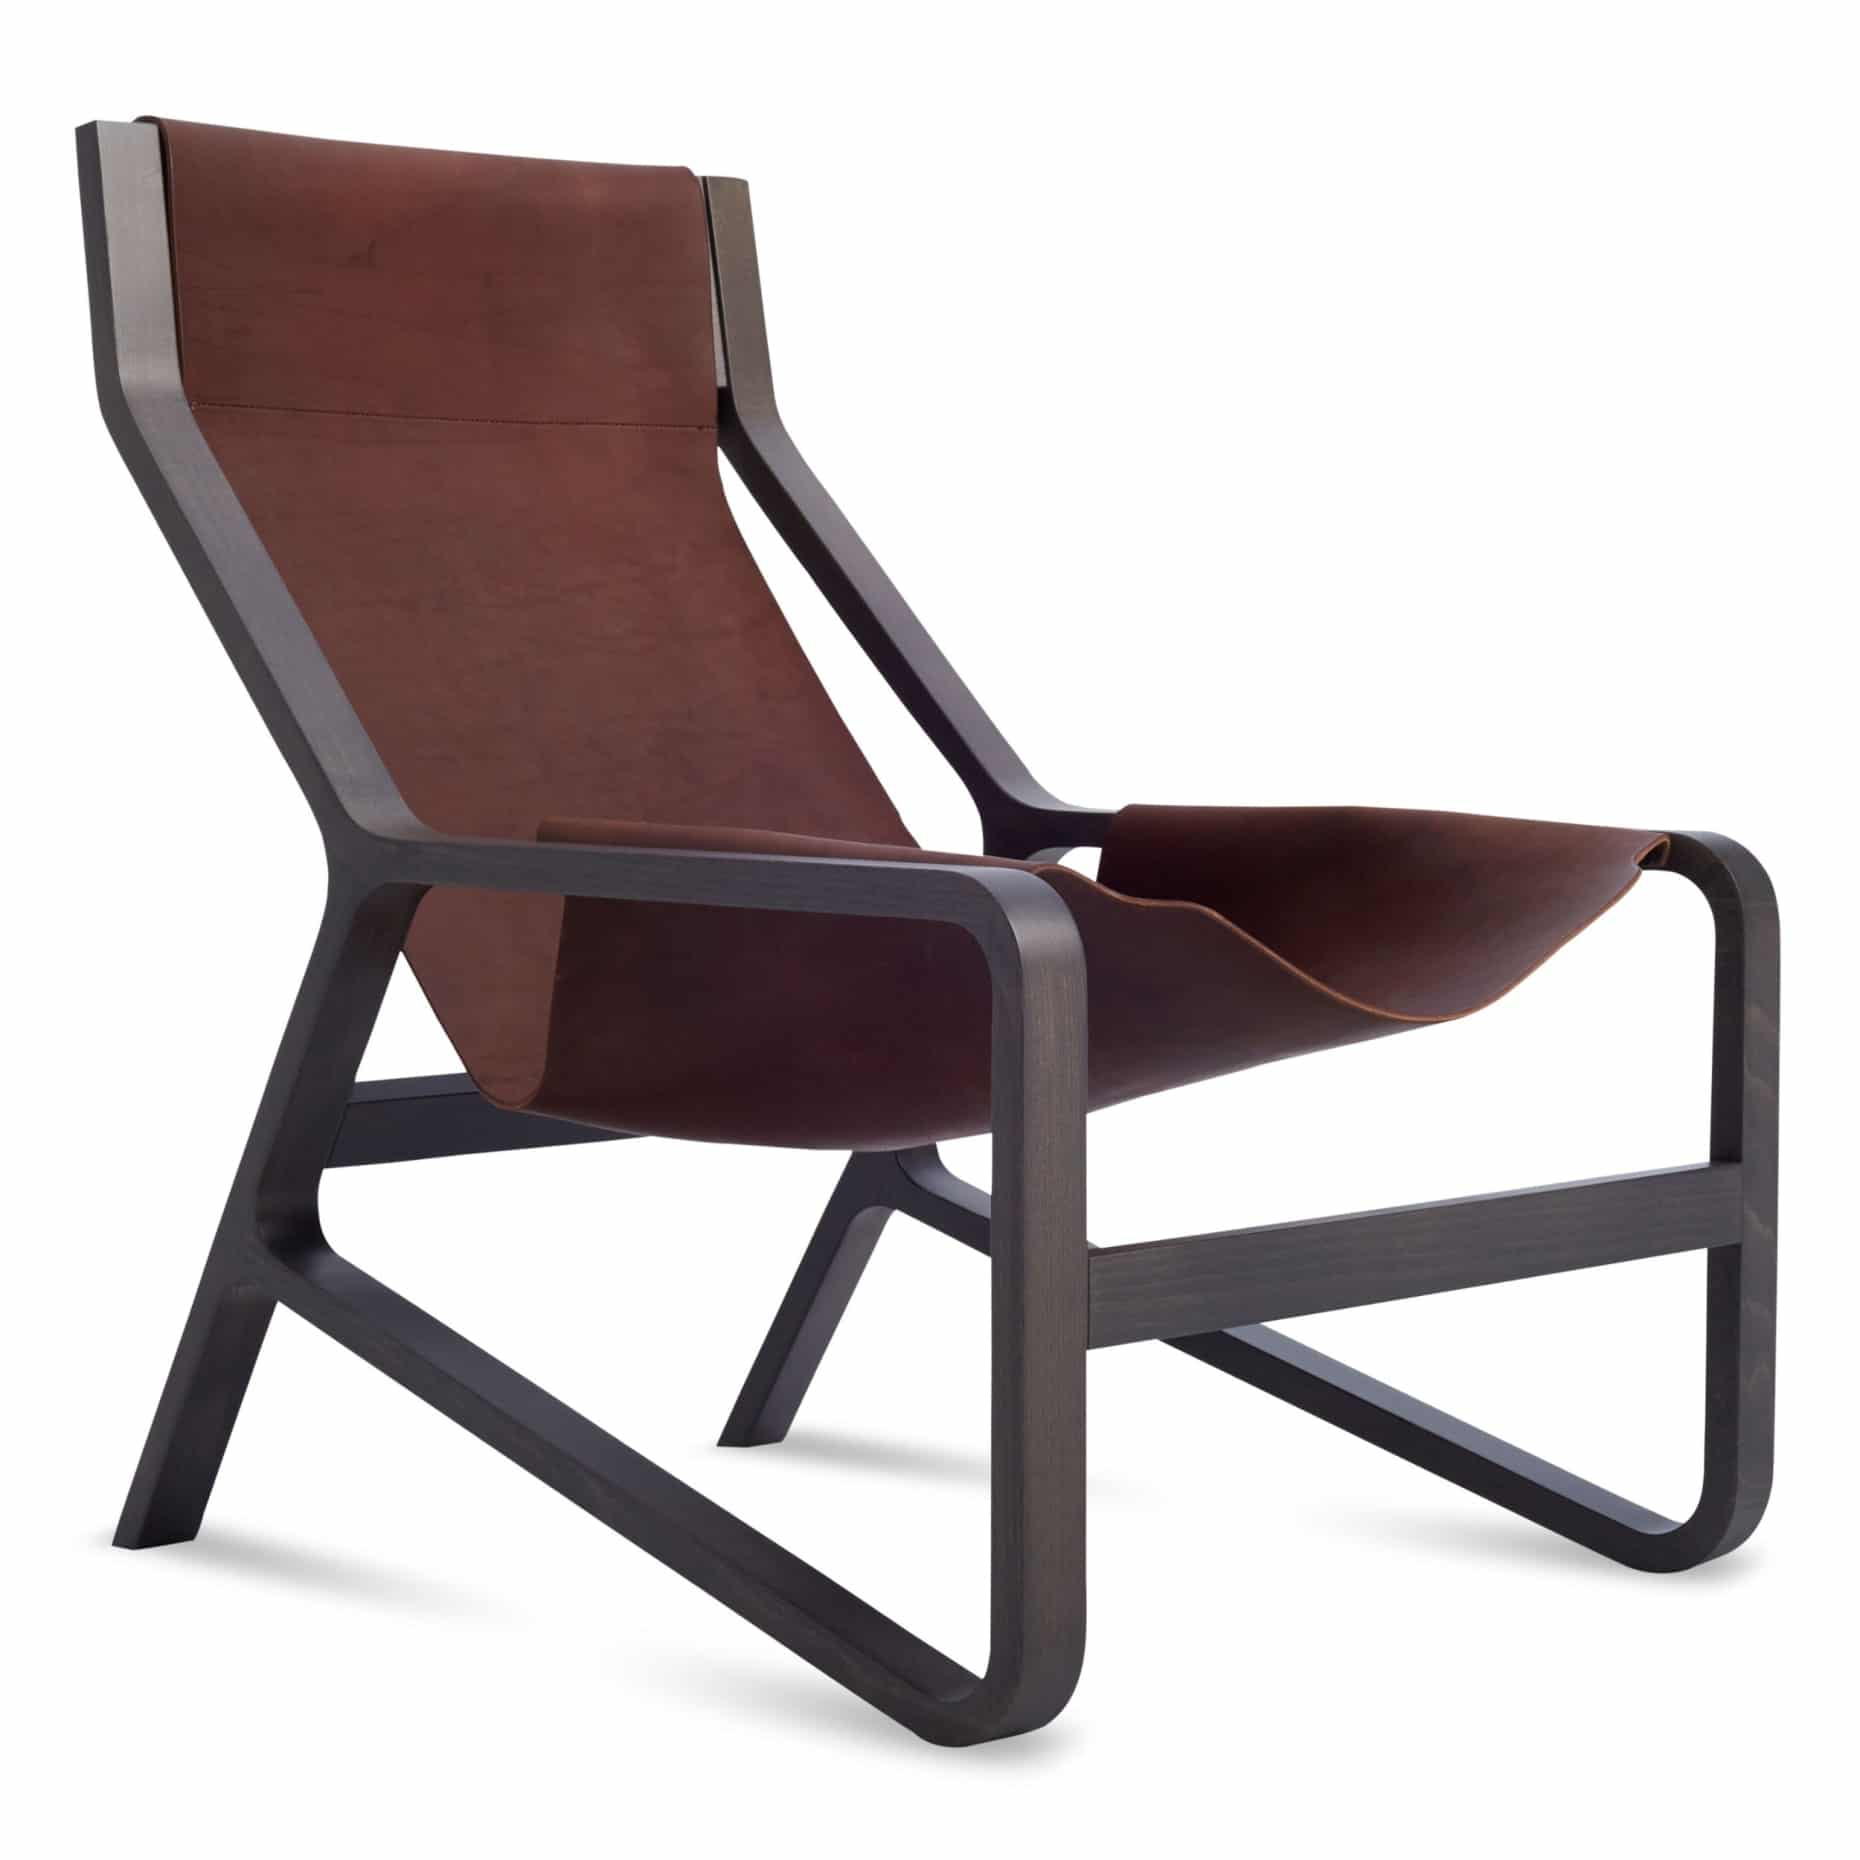 tr1 lchair sk 34 toro lounge chair chocolate smoke